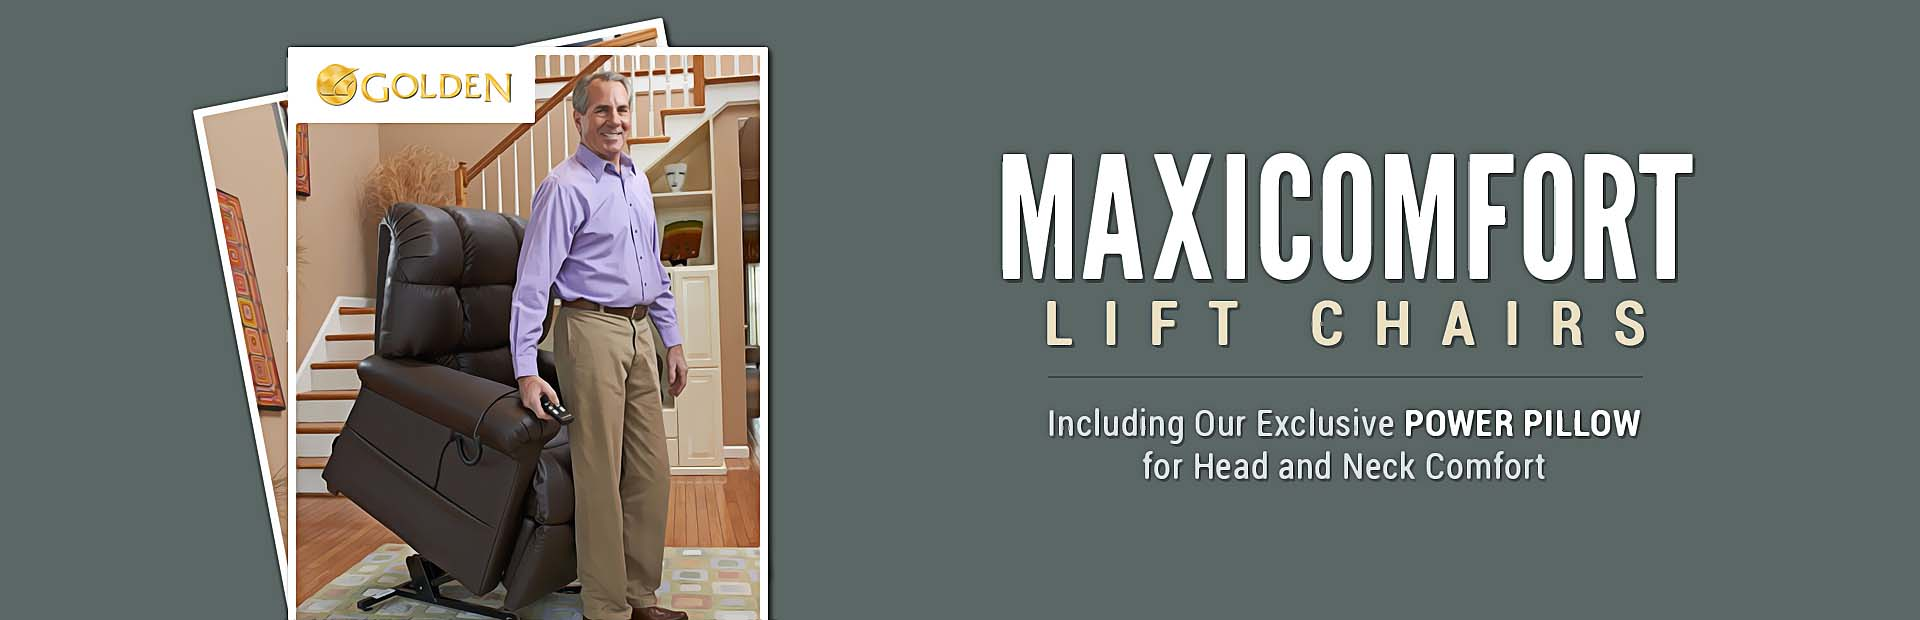 Golden Technologies MaxiComfort Lift Chairs: Click here for details.